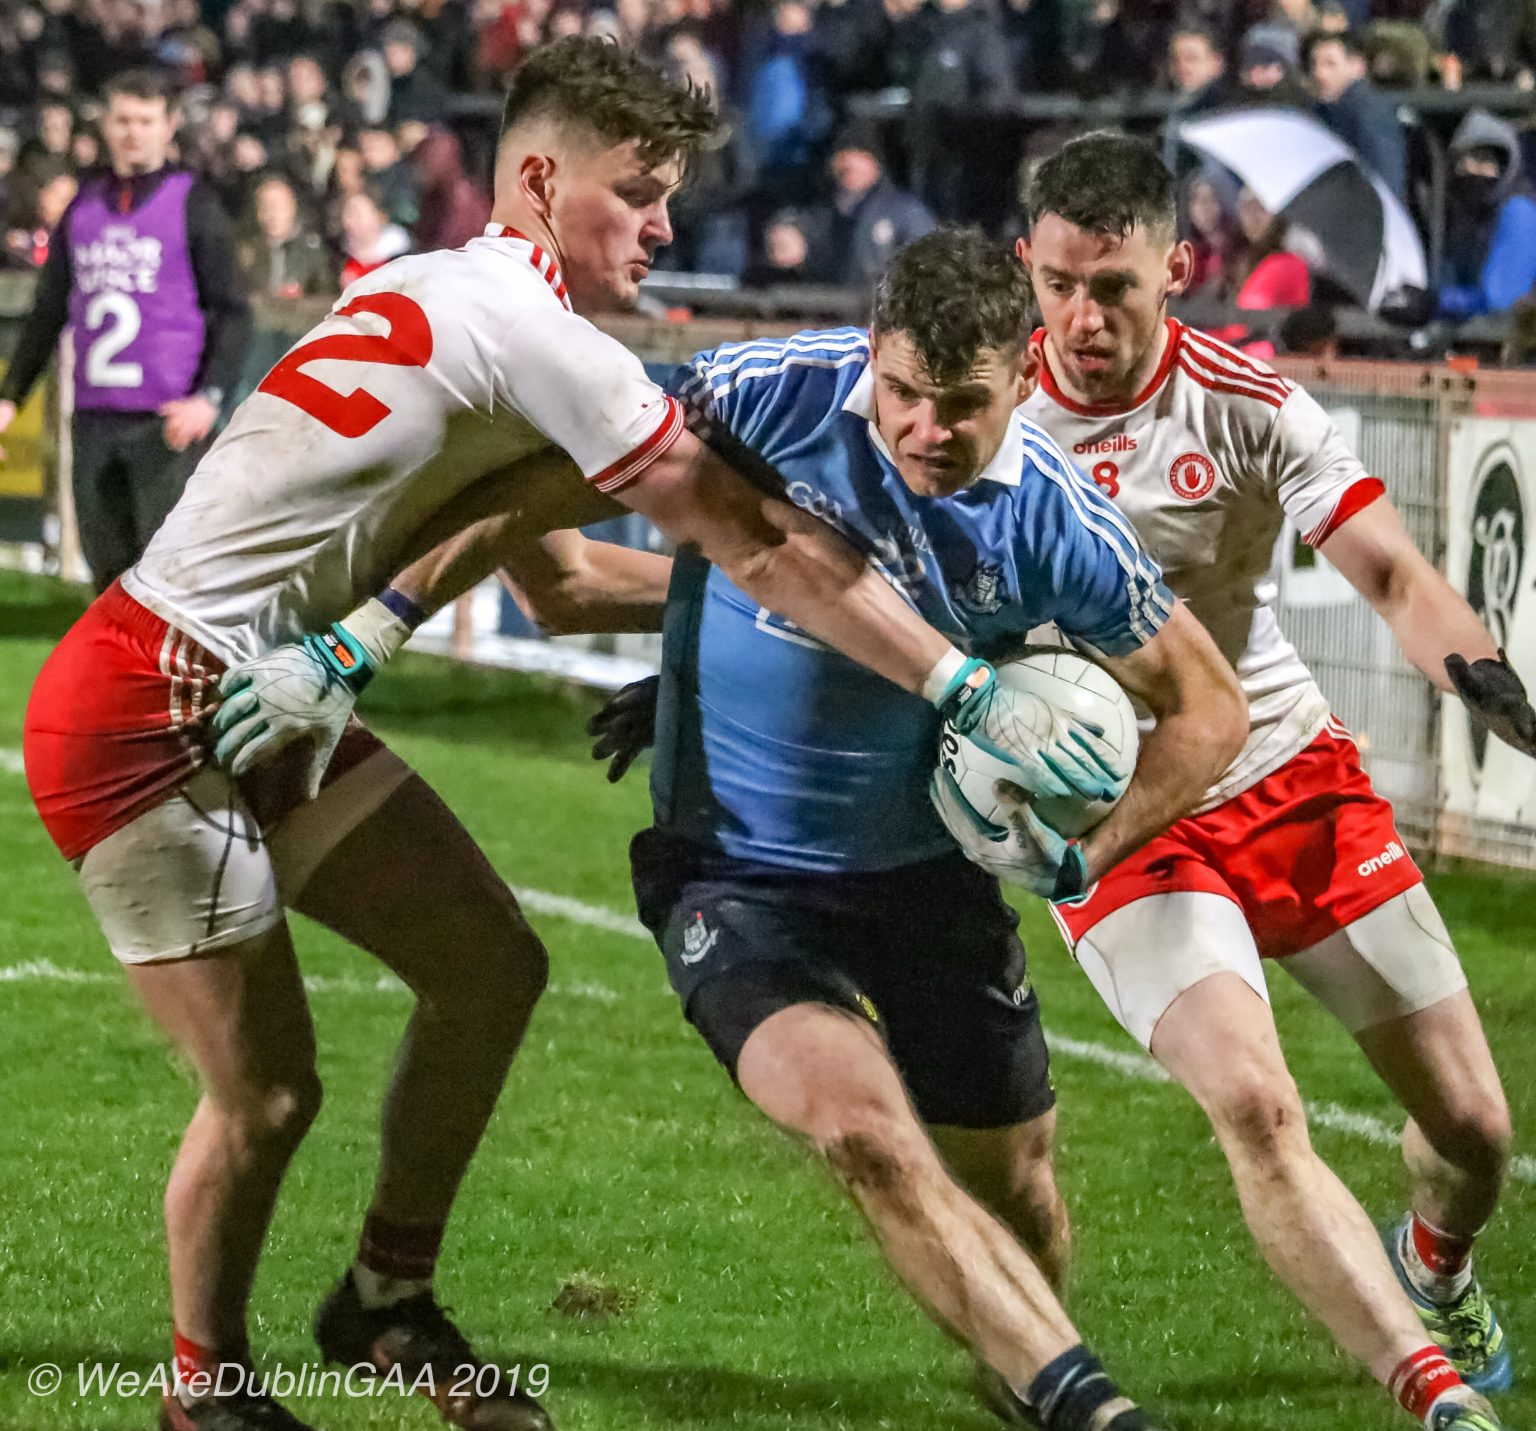 Dublin player in a sky blue jersey and navy shorts is tackled by two Tyrone players in white jerseys with red trim and red shorts during Dublin's League encounter with Tyrone